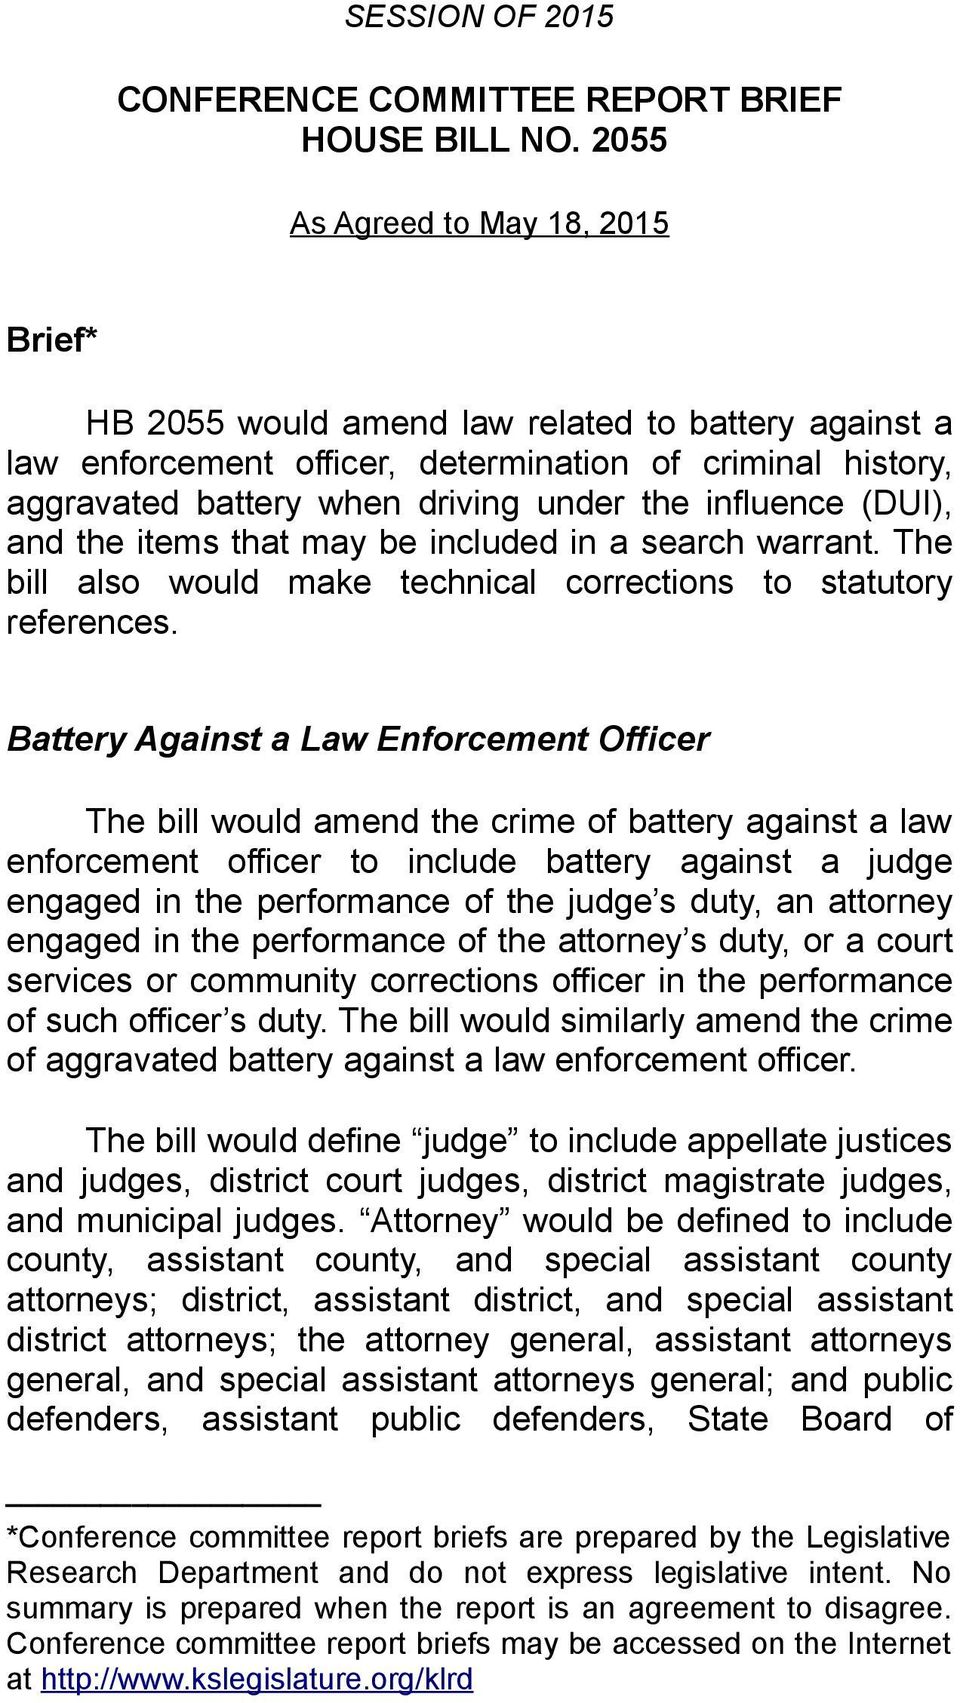 influence (DUI), and the items that may be included in a search warrant. The bill also would make technical corrections to statutory references.